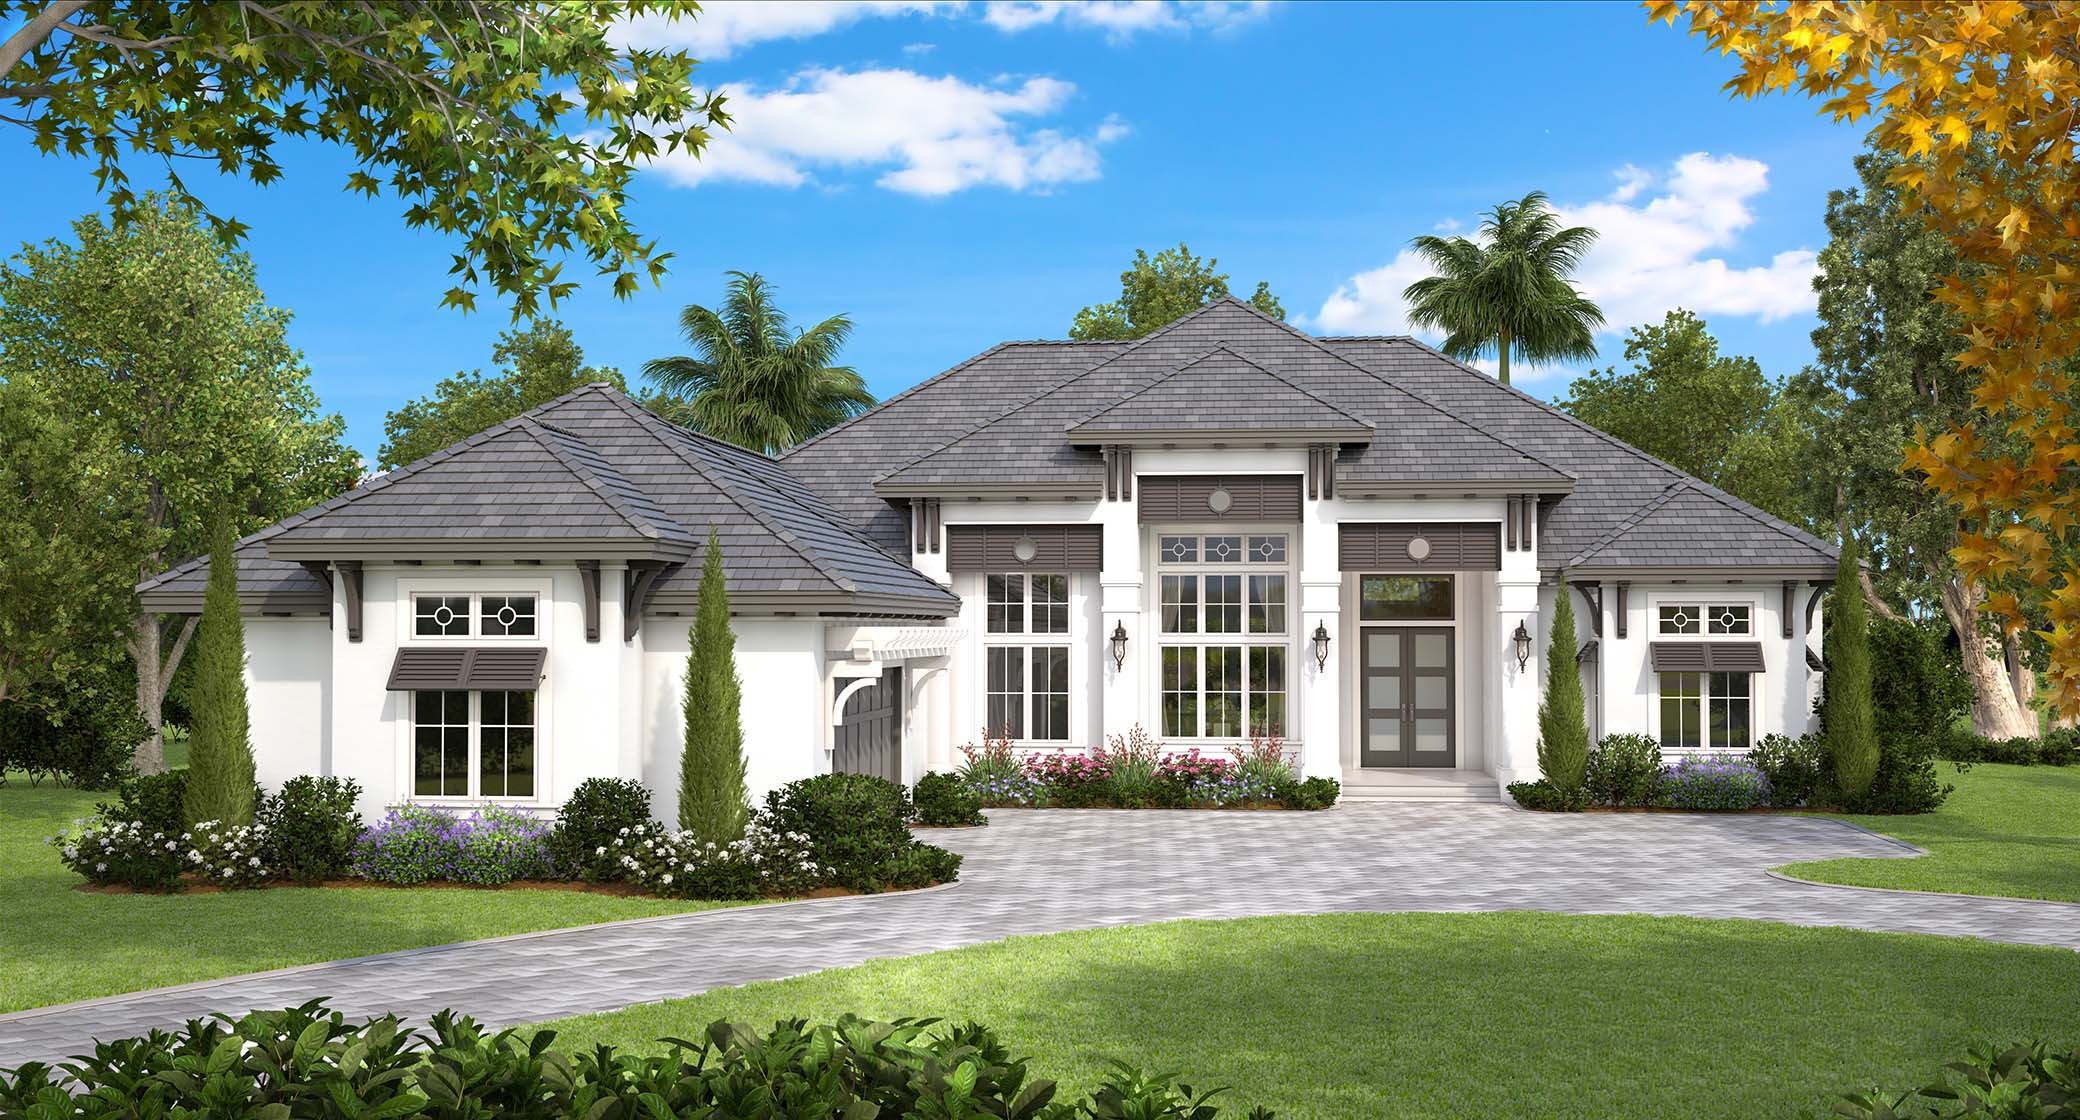 Coastal European House Plan 175 1130 4 Bedrm 4089 Sq Ft Home Plan